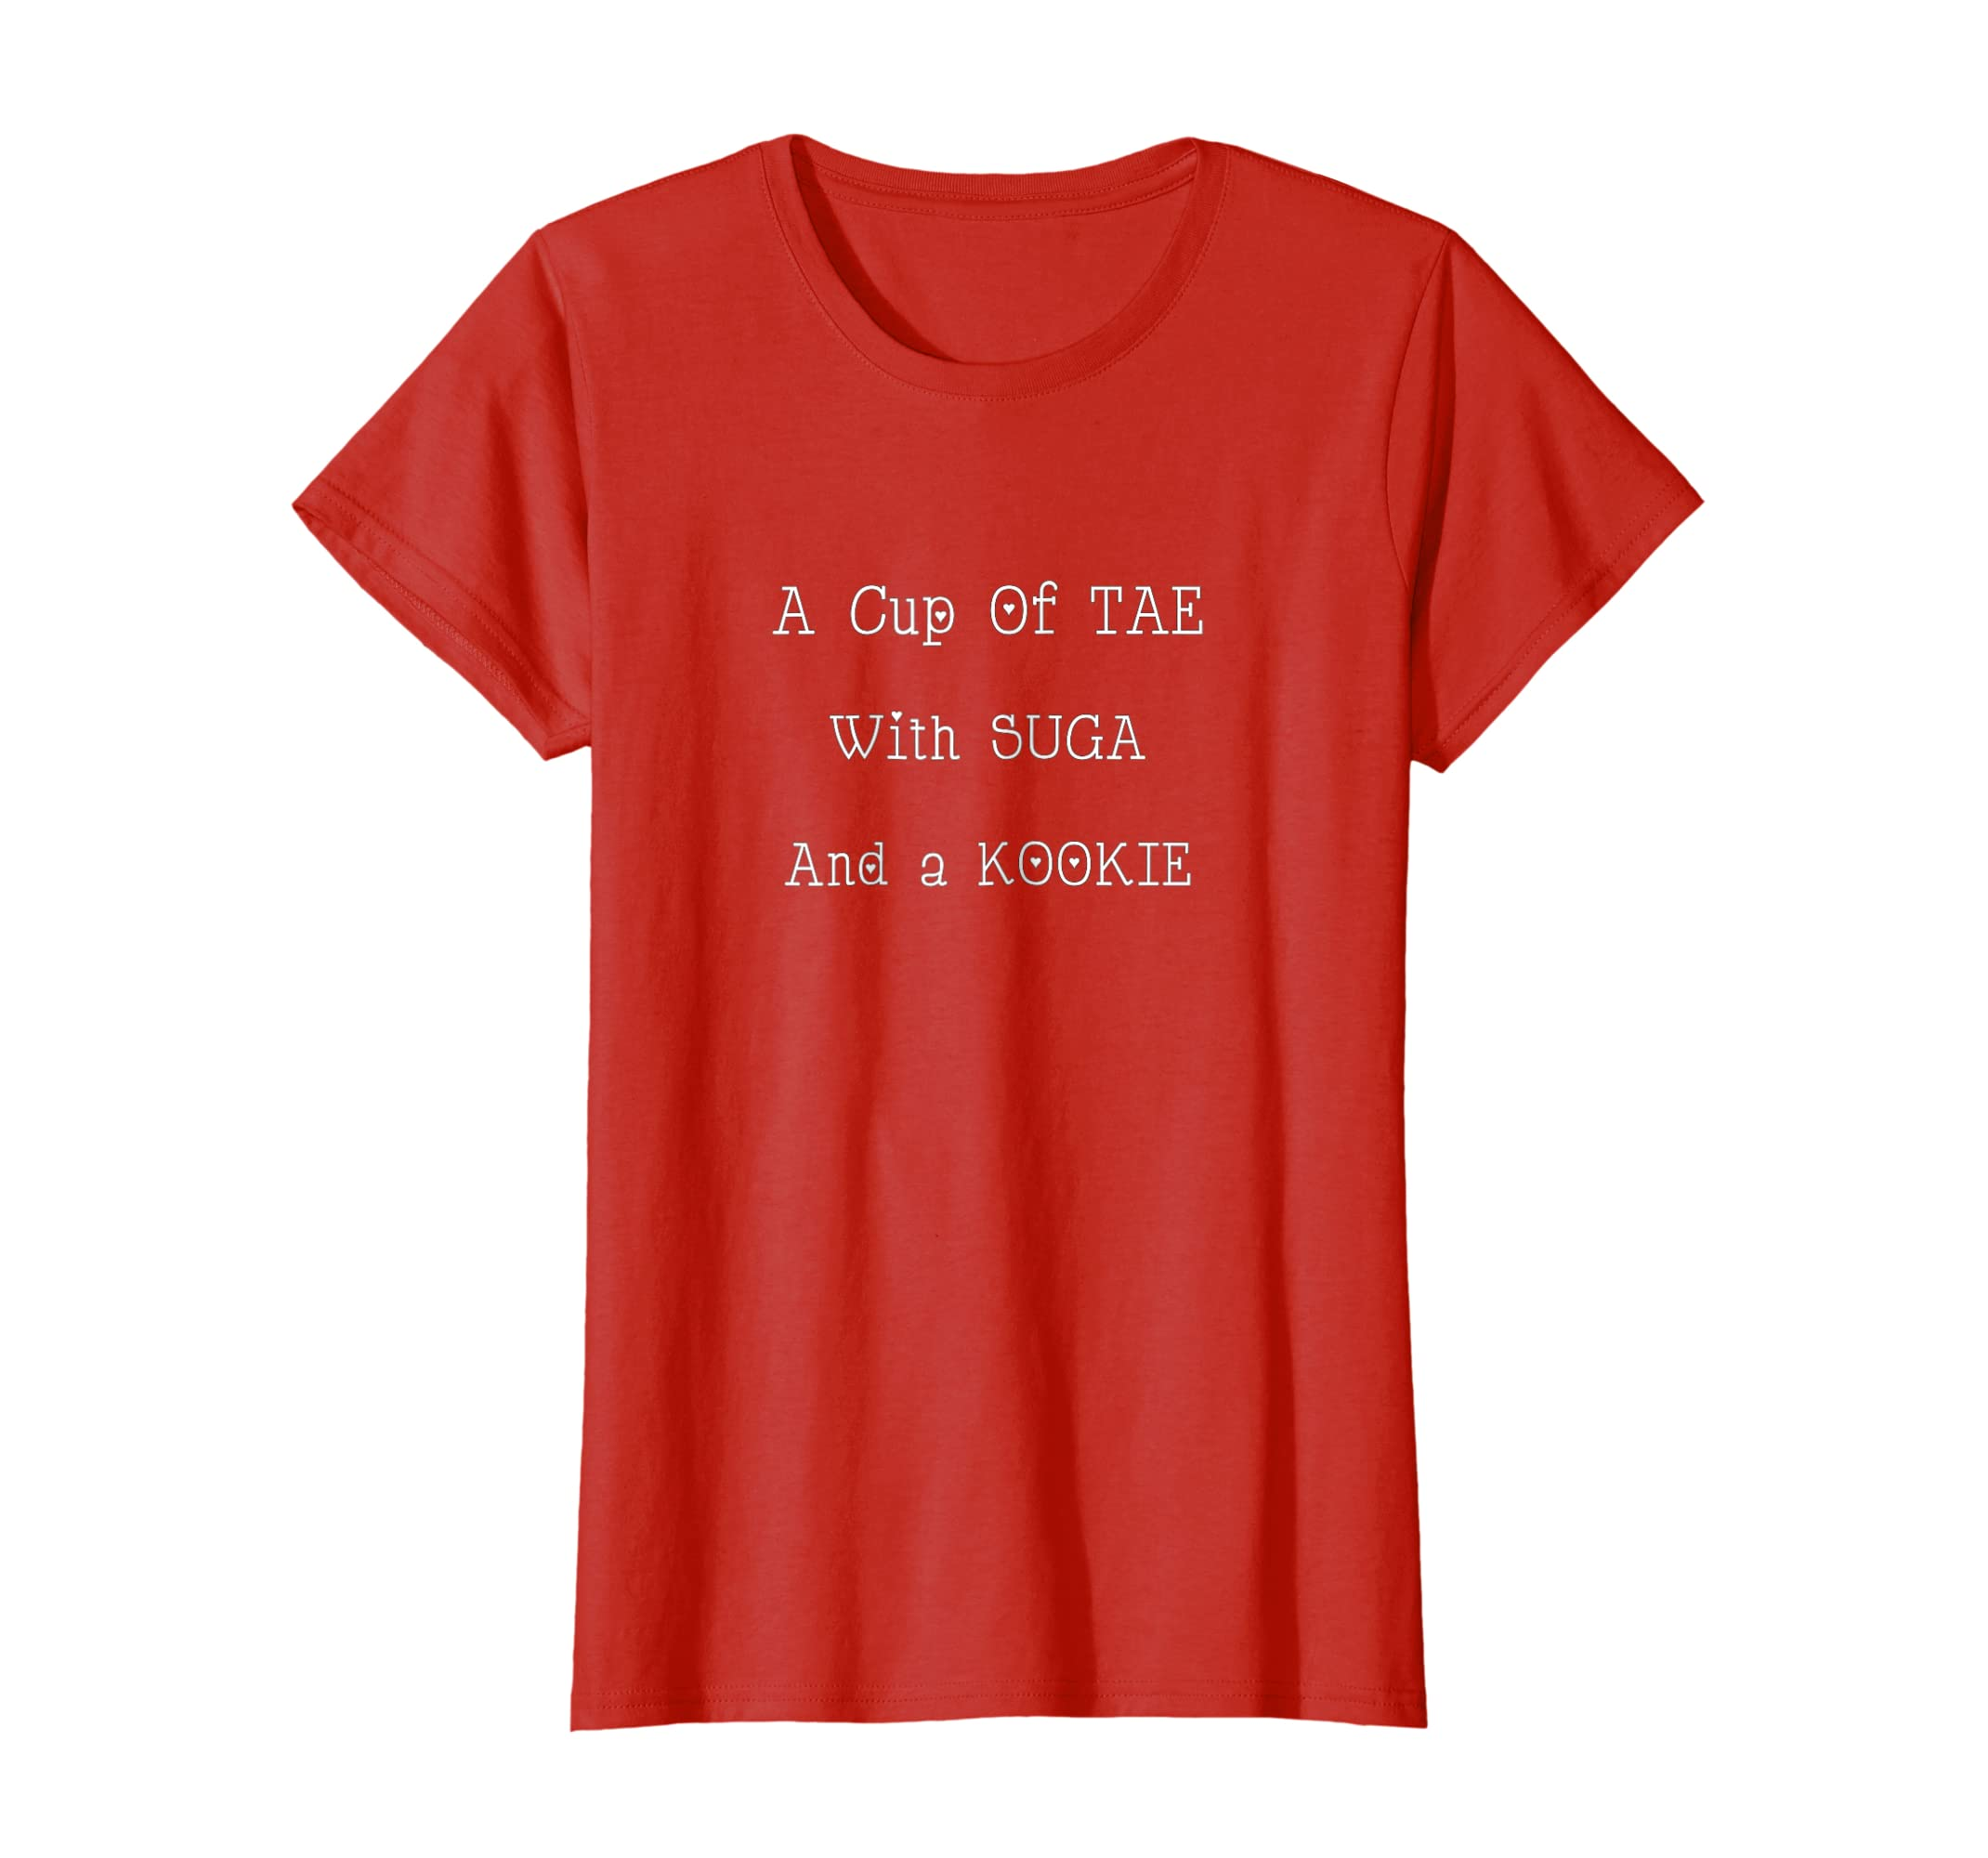 Amazon.com: K PoP - A Cup of Tae with Suga and a Kookie T Shirts: Clothing